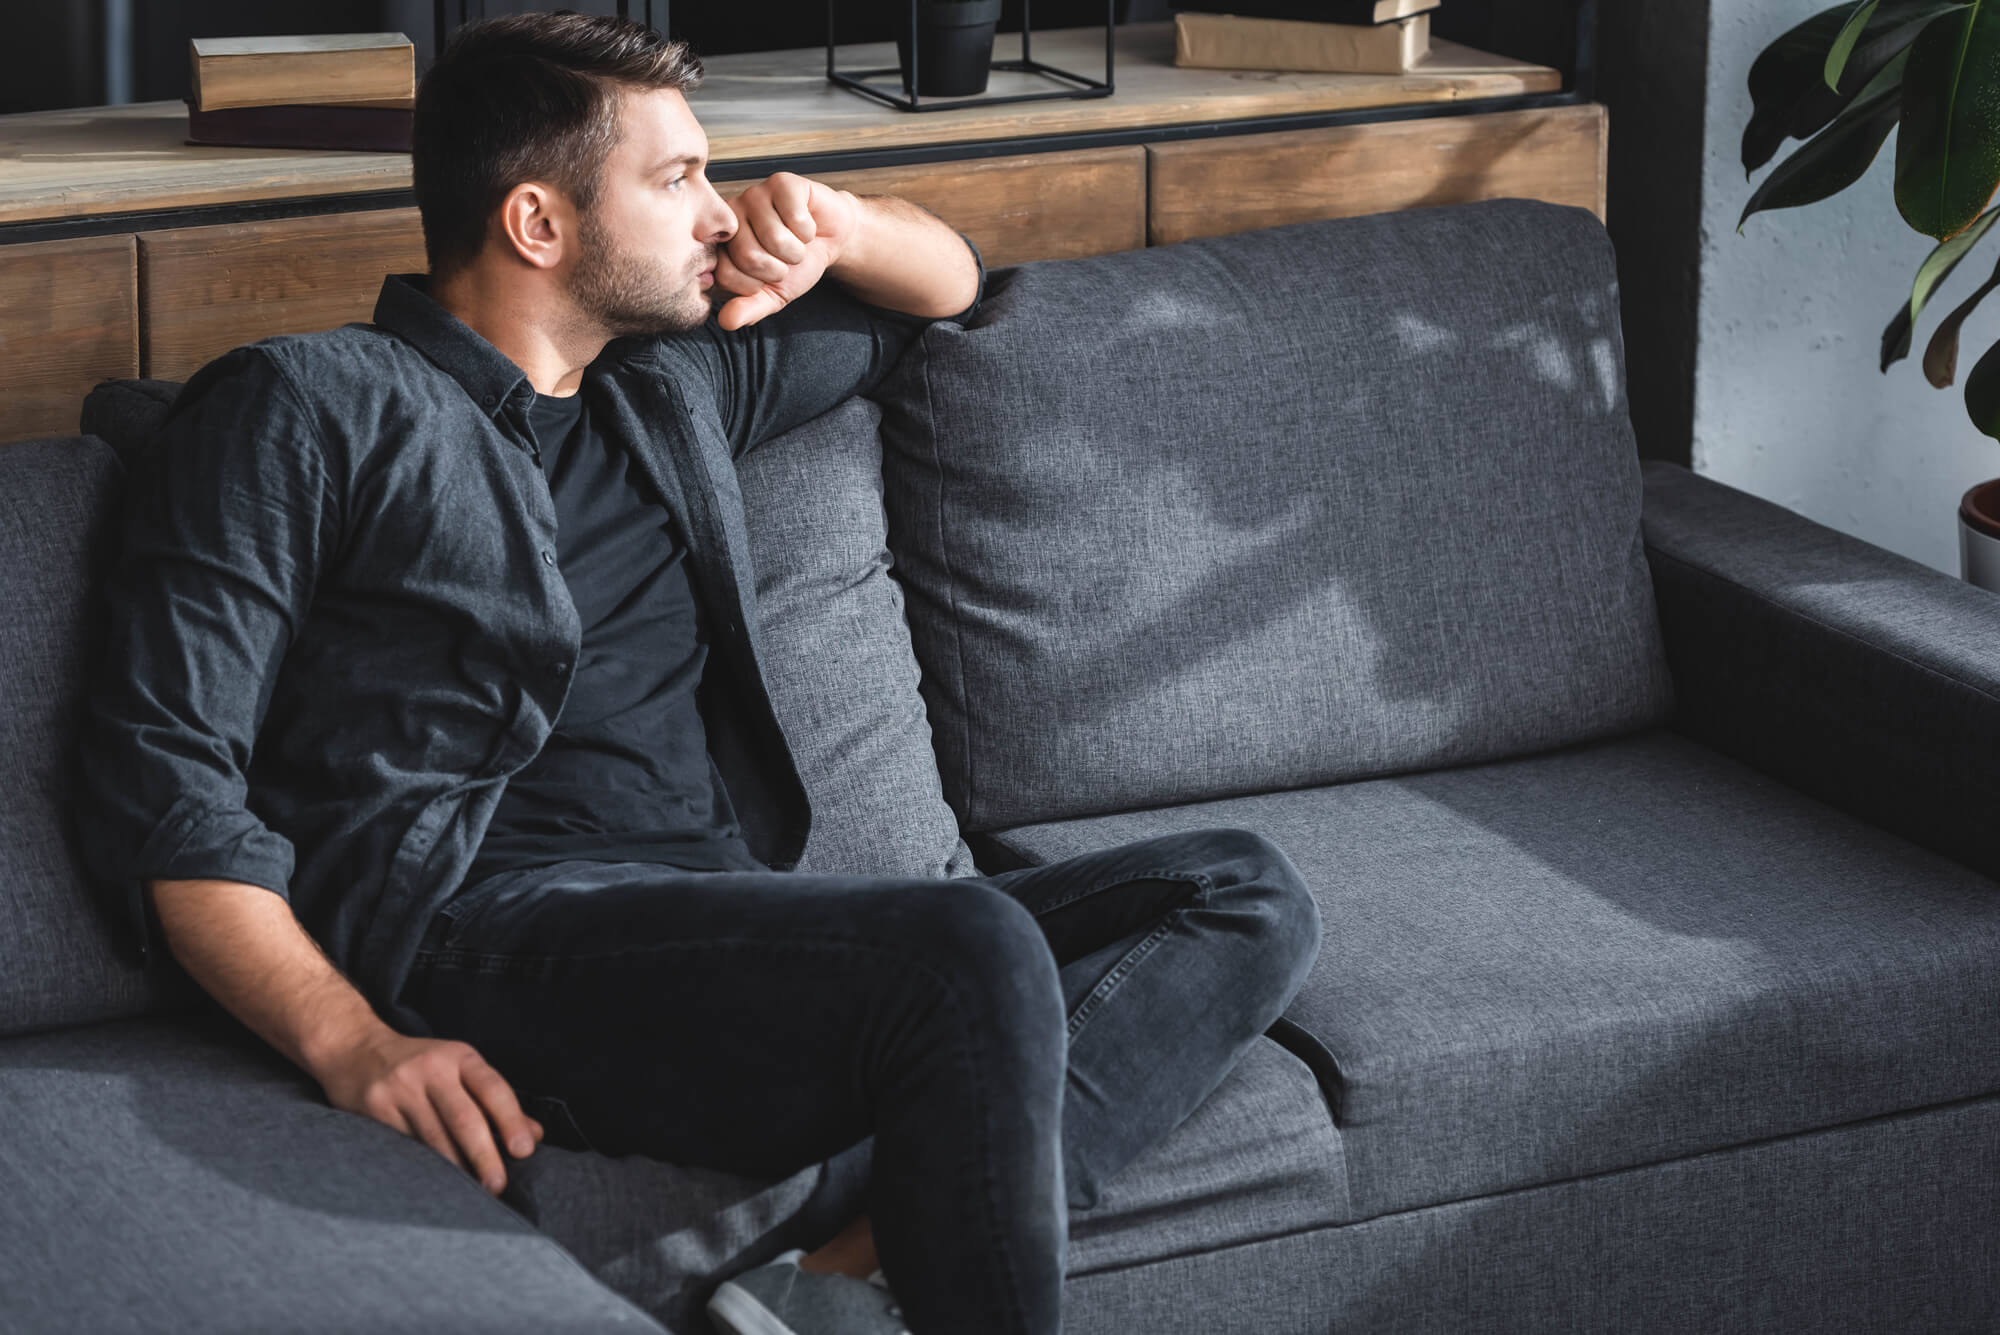 A man wearing a dark shirt and dark jeans sits on a gray sofa. He's staring out the window, possibly worrying about low testosterone and its effect on his sex drive.